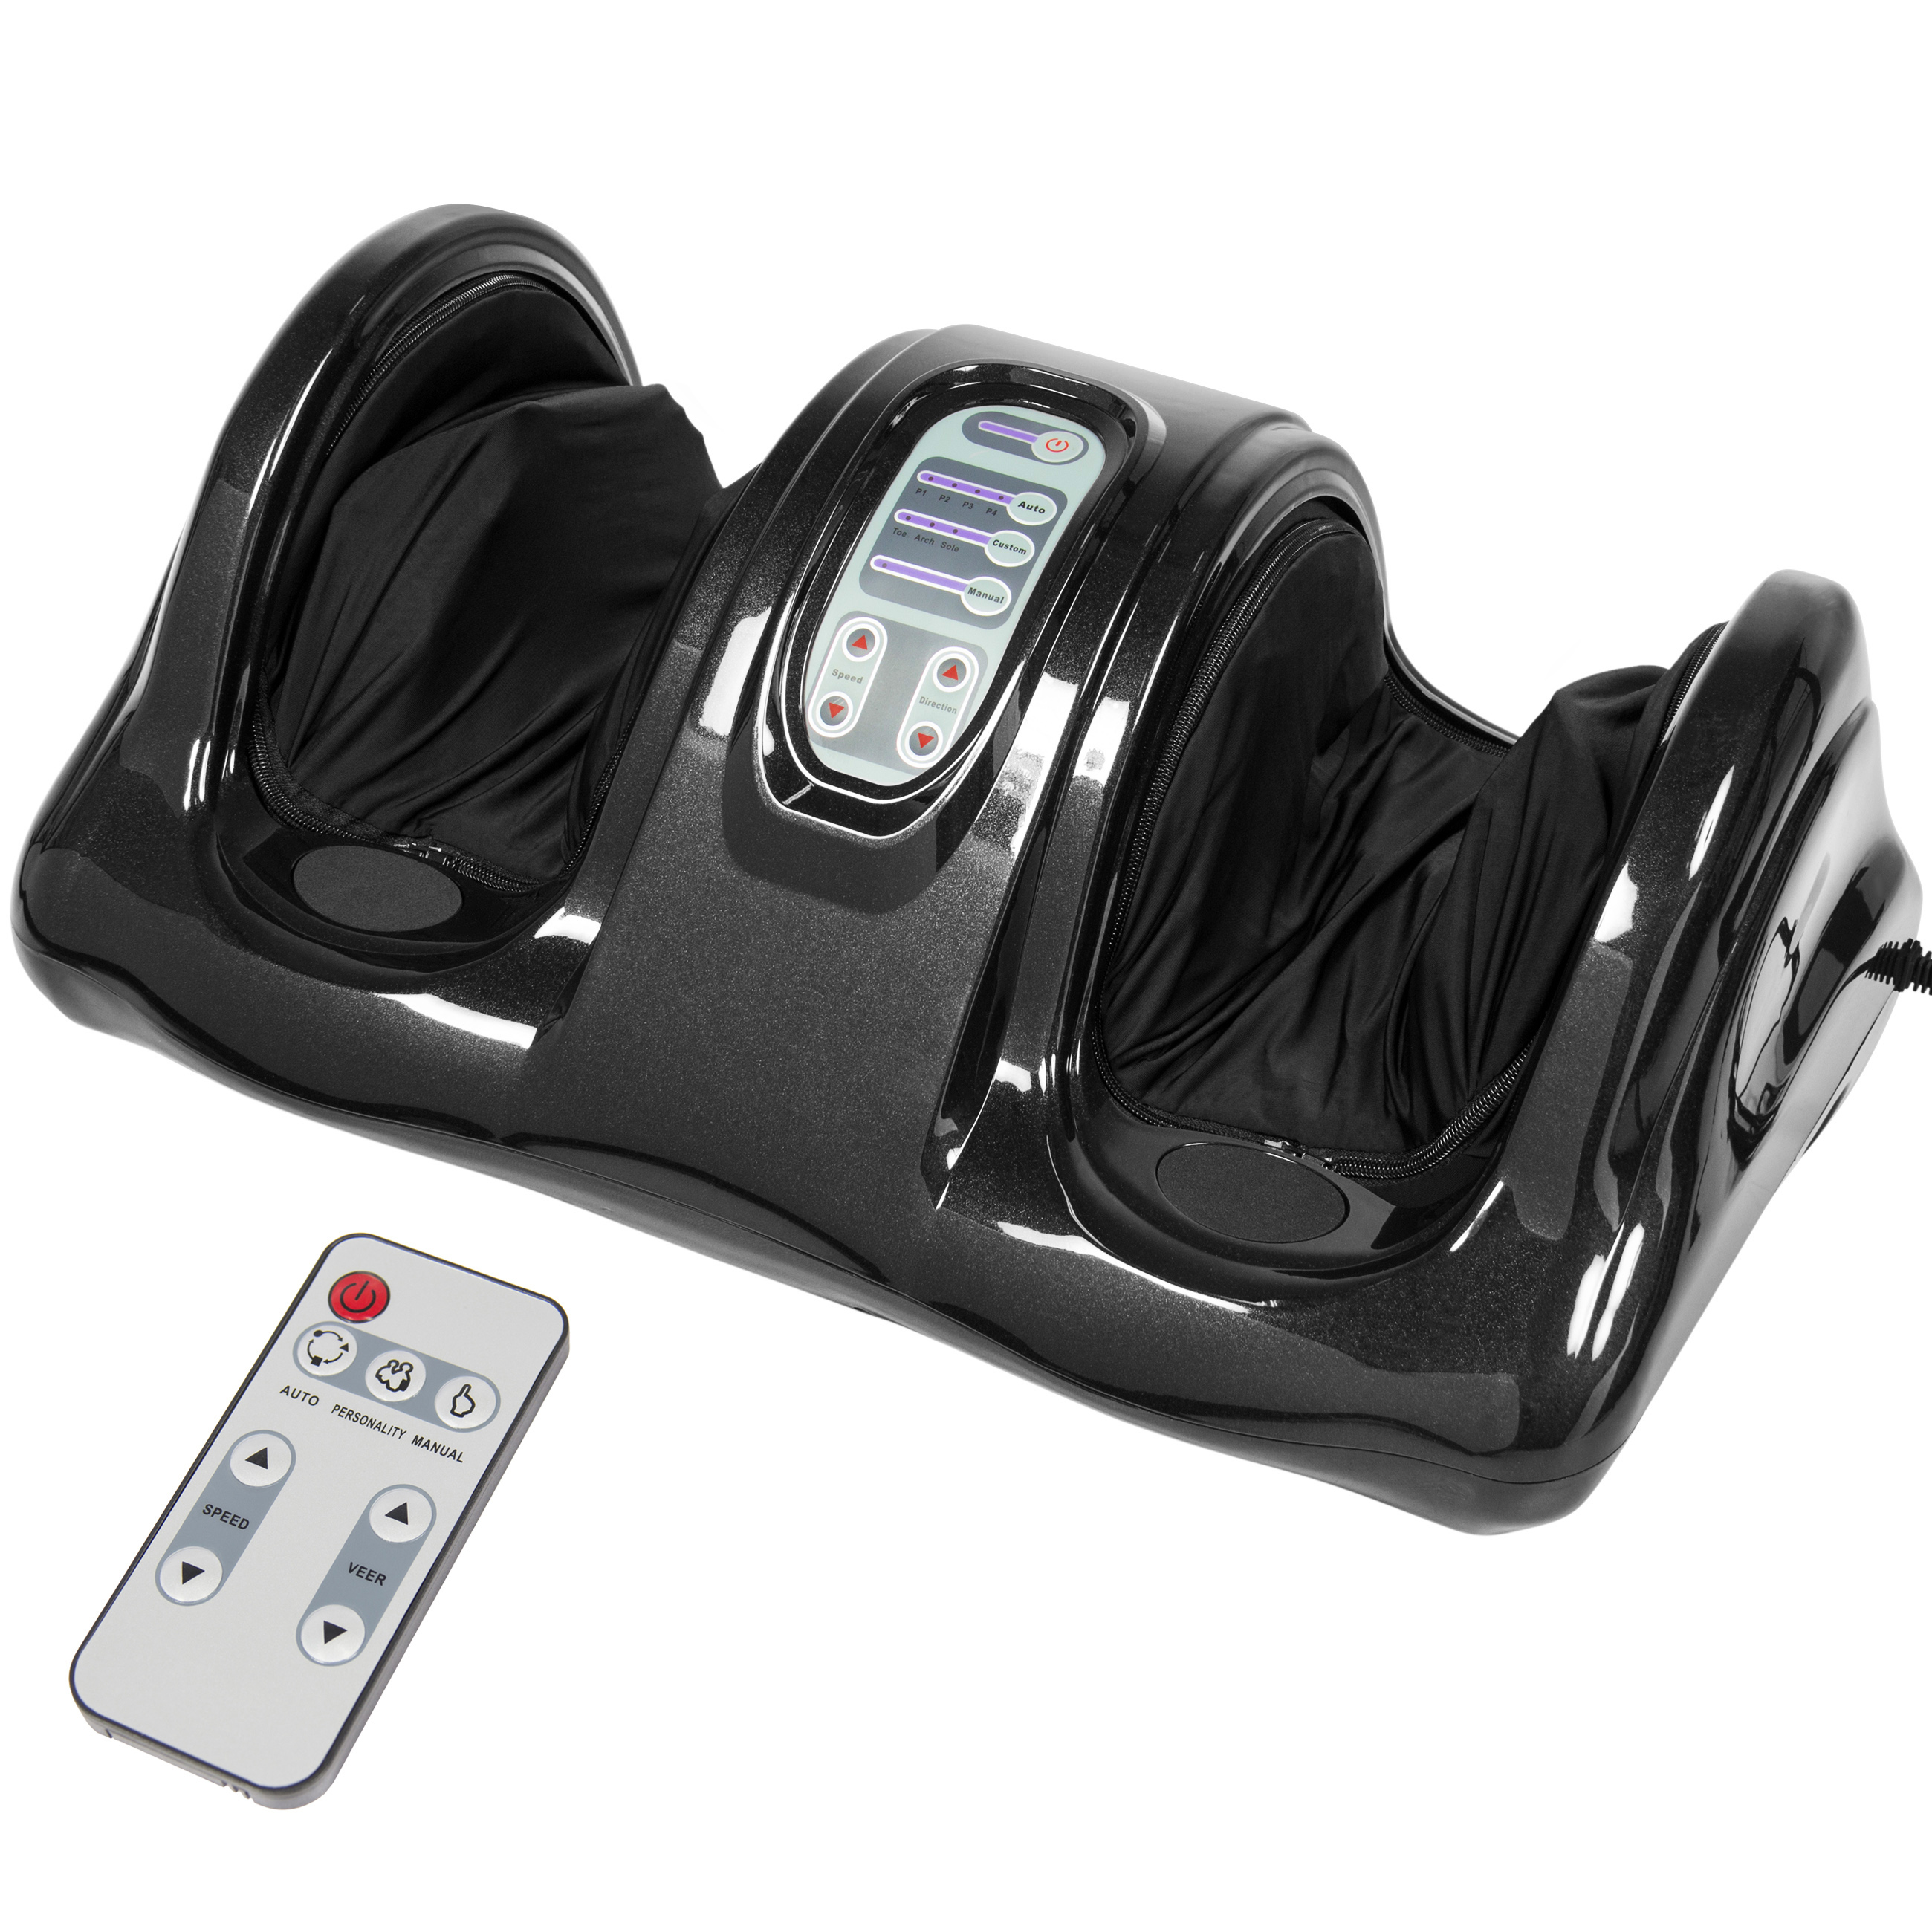 Shiatsu Foot Massager Kneading and Rolling Leg Calf Ankle w/Remote - Black